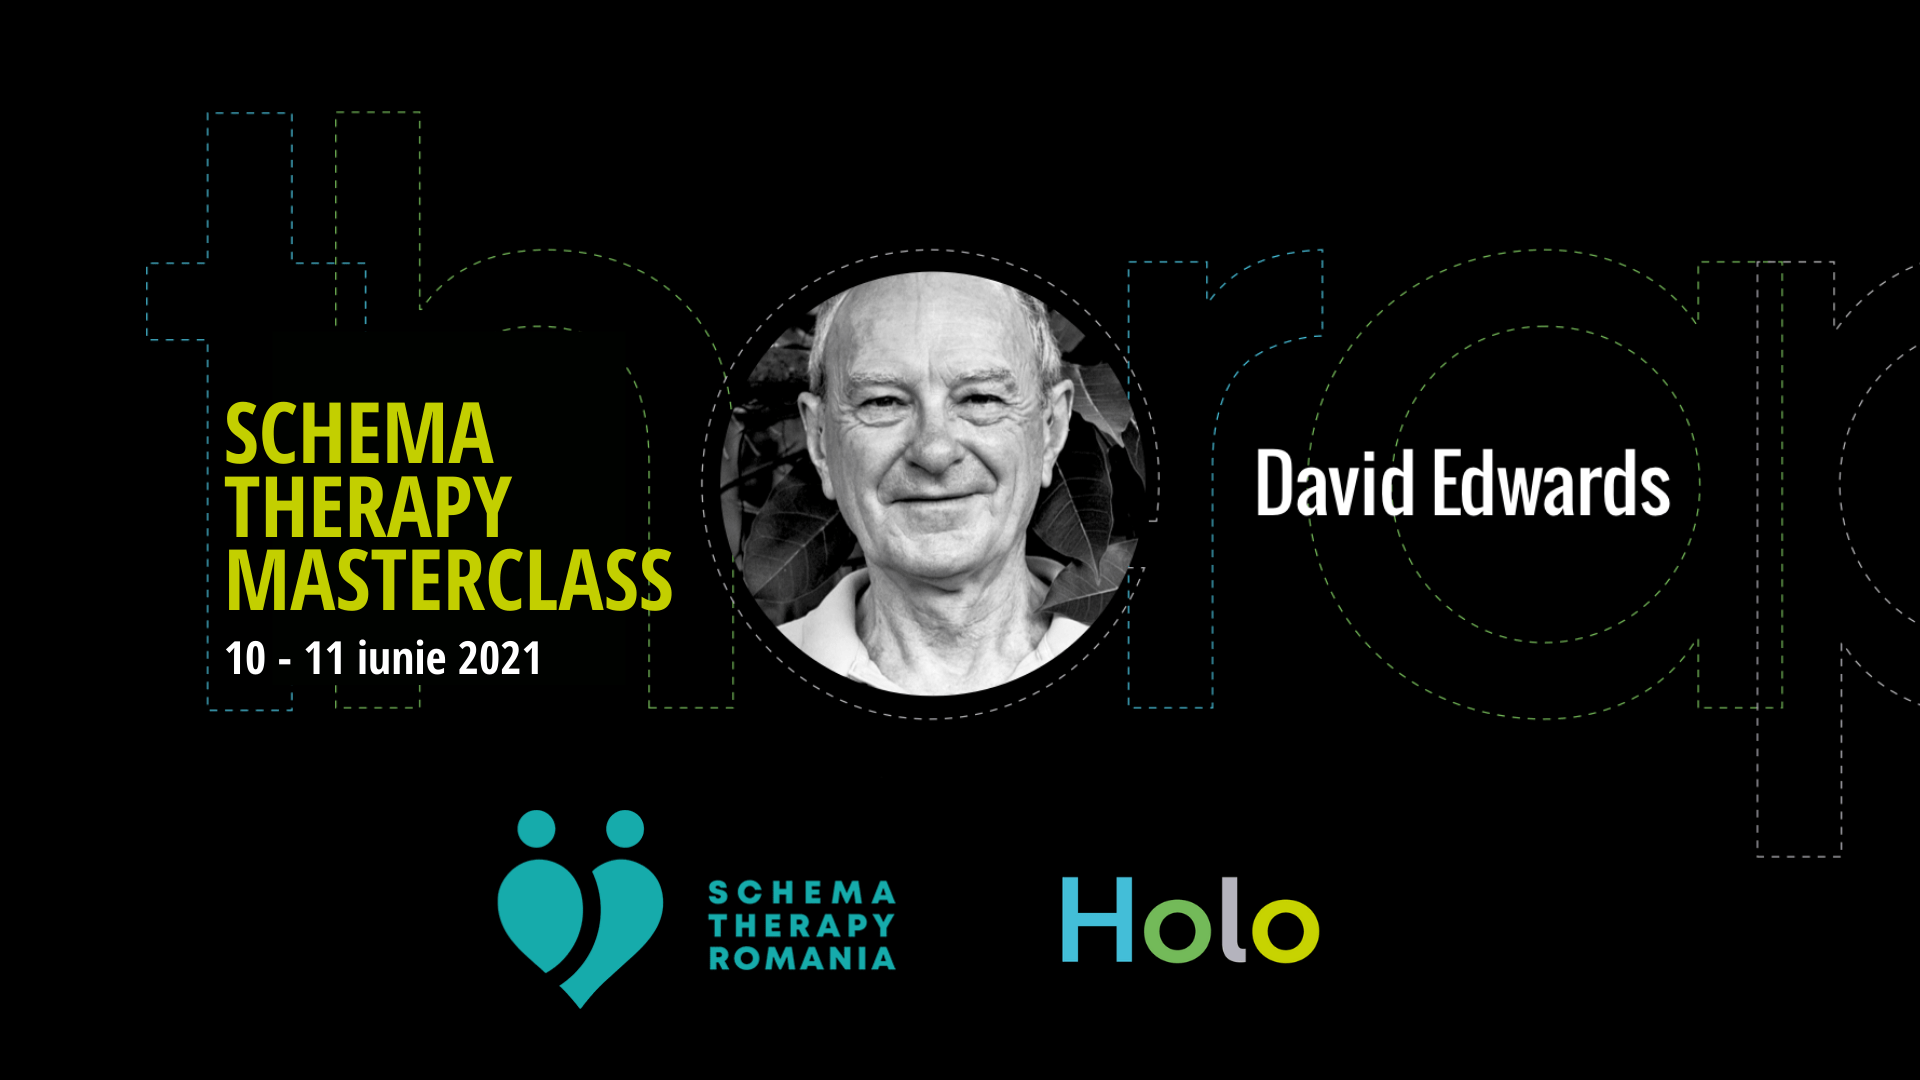 Masterclass David Edwards